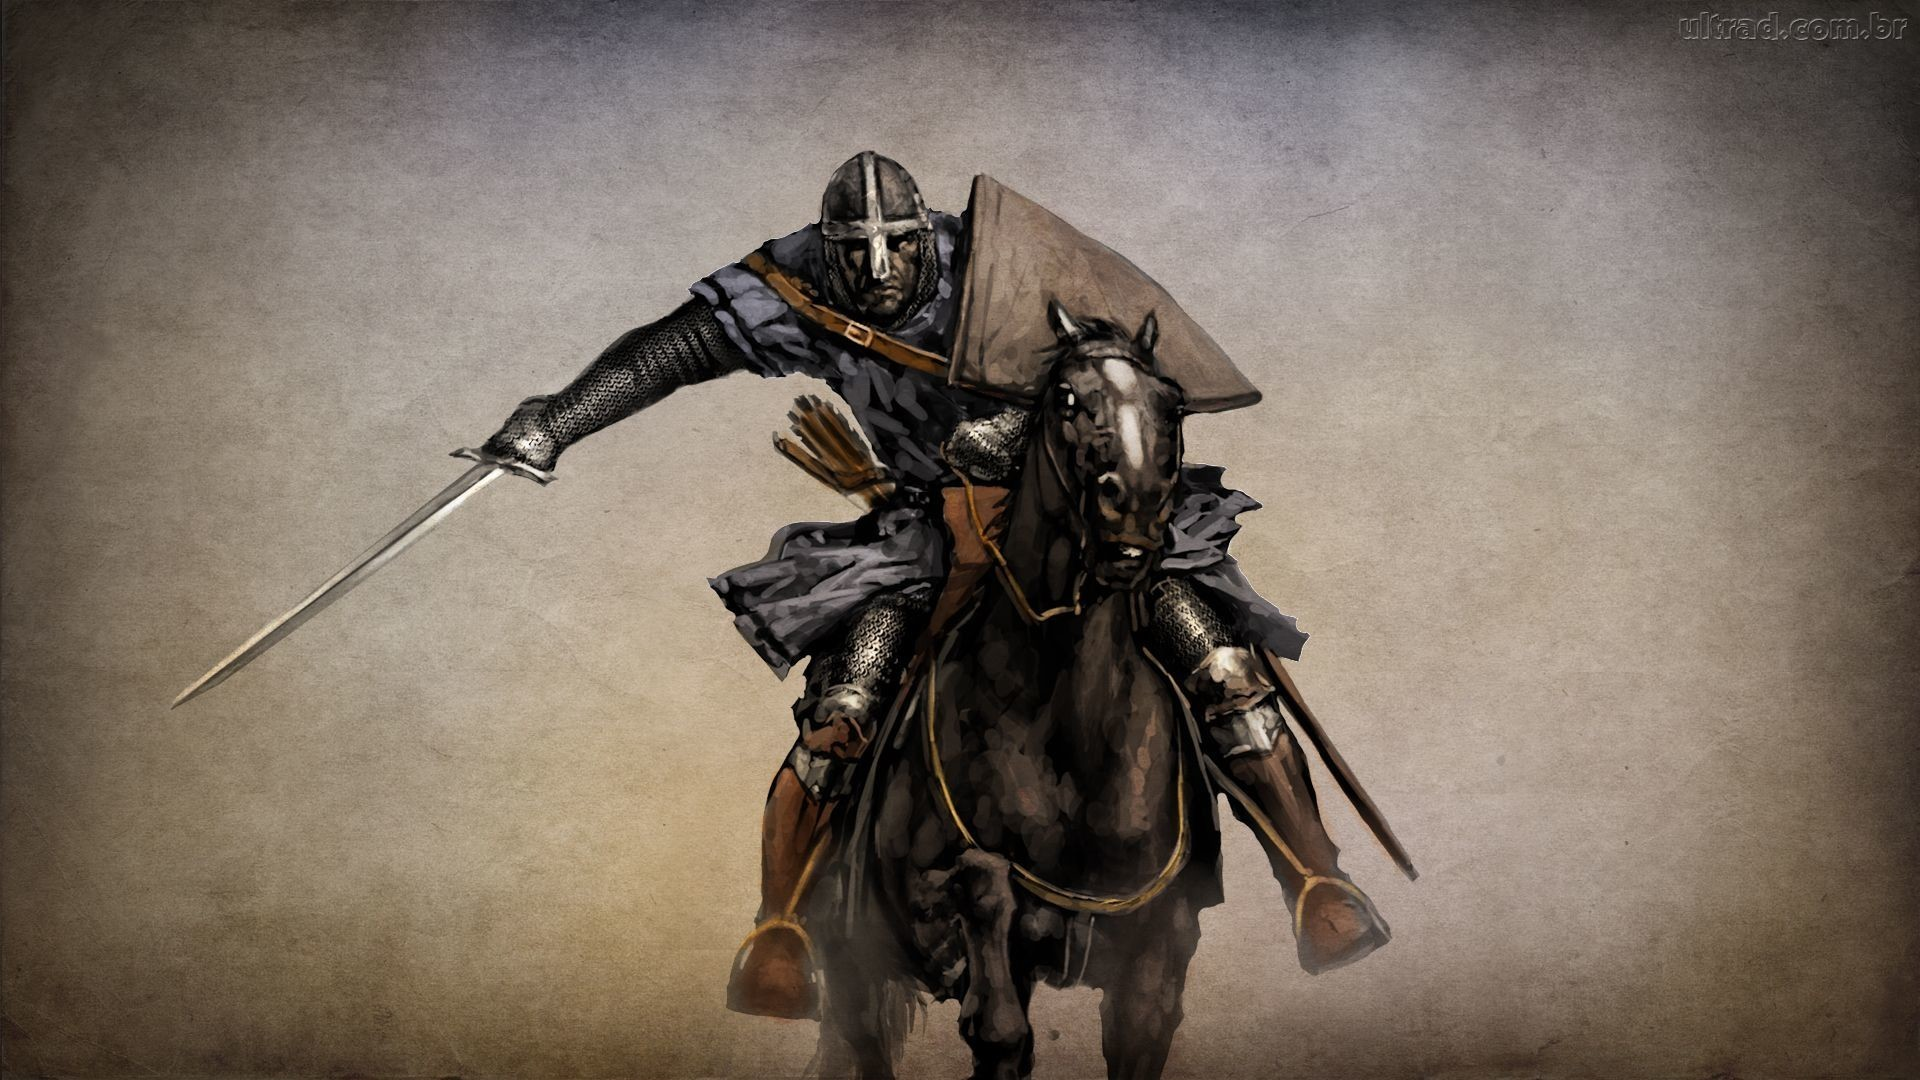 72 Knights Templar Wallpapers on WallpaperPlay 1920x1080